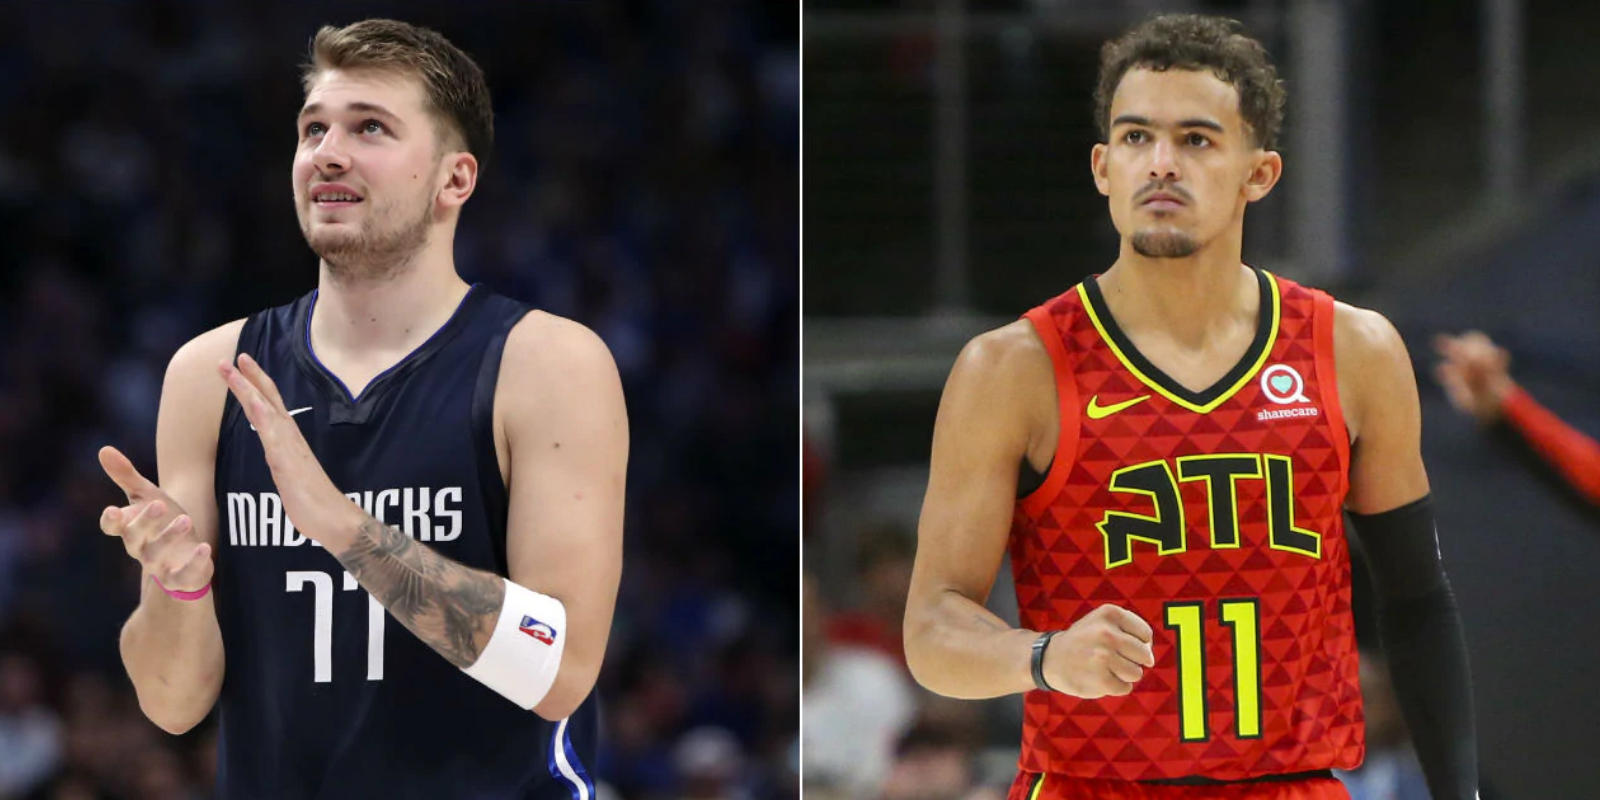 Luka Doncic and Trae Young headline U.S. vs. World showdown in 2020 NBA Rising Stars